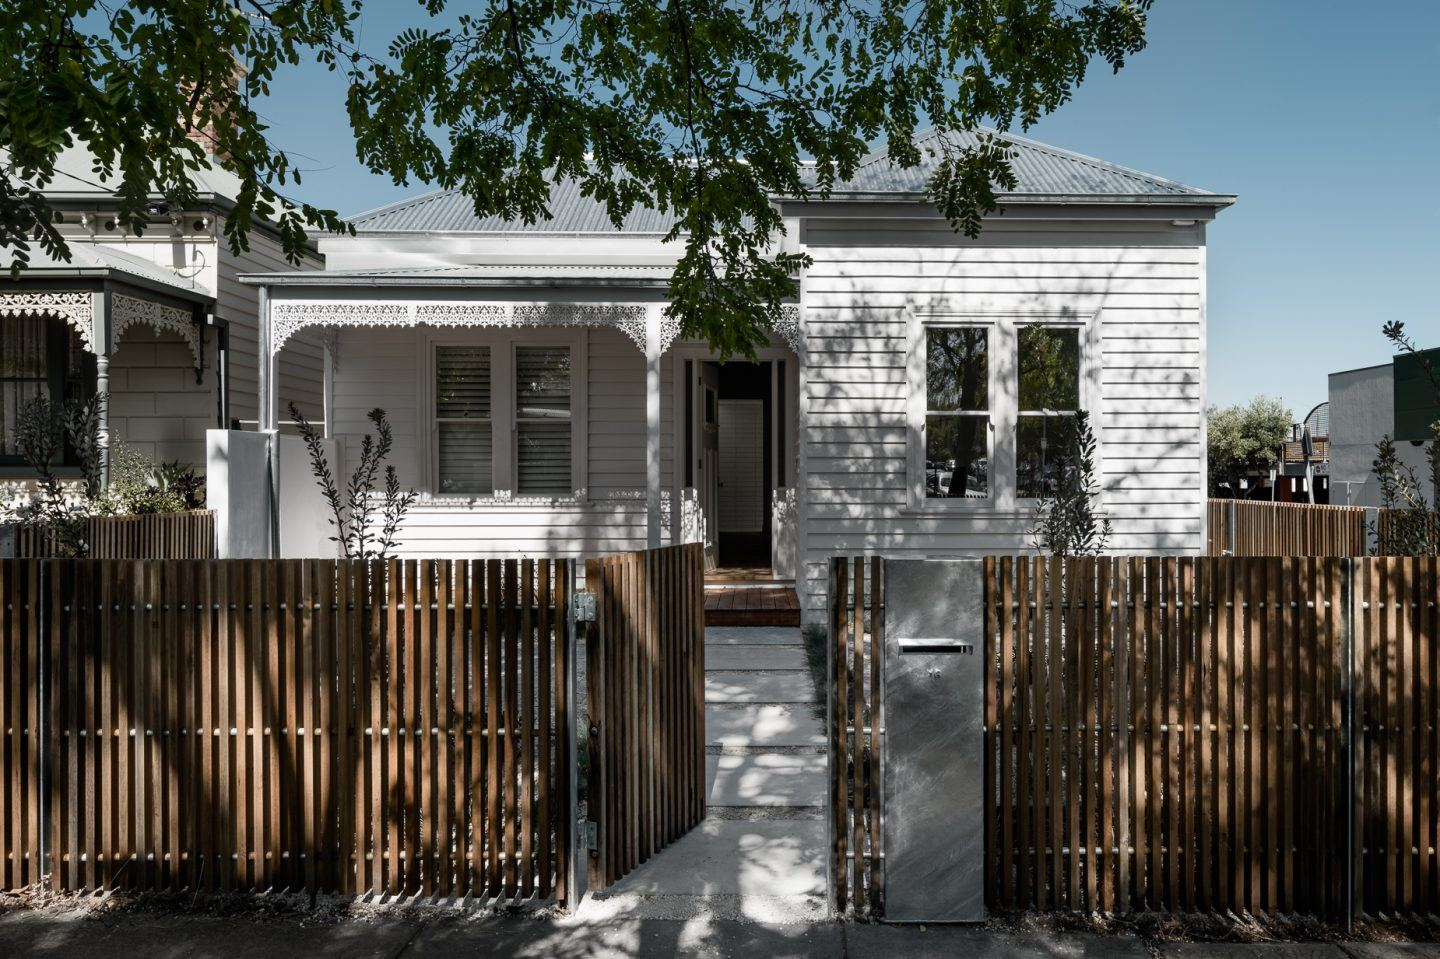 IGNANT-Architecture-Ritz-Ghougassian-Edsall-Street-03